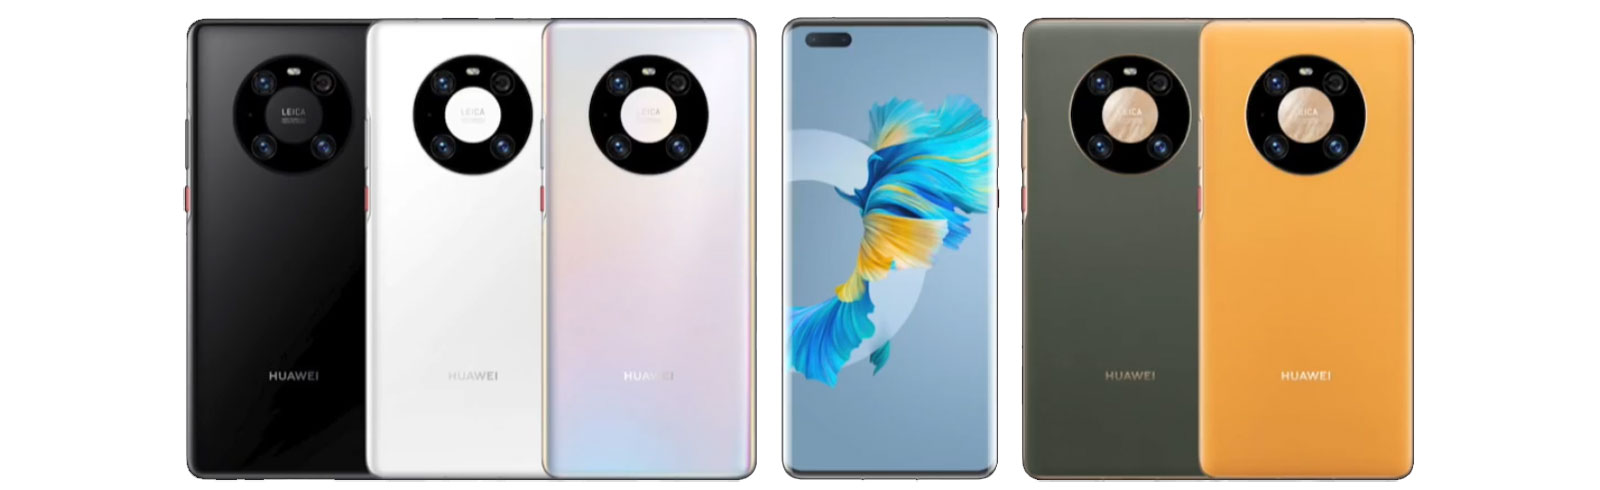 Huawei Mate 40, Mate 40 Pro, and Mate 40 Pro+ are unveiled with Kirin 9000 chipset